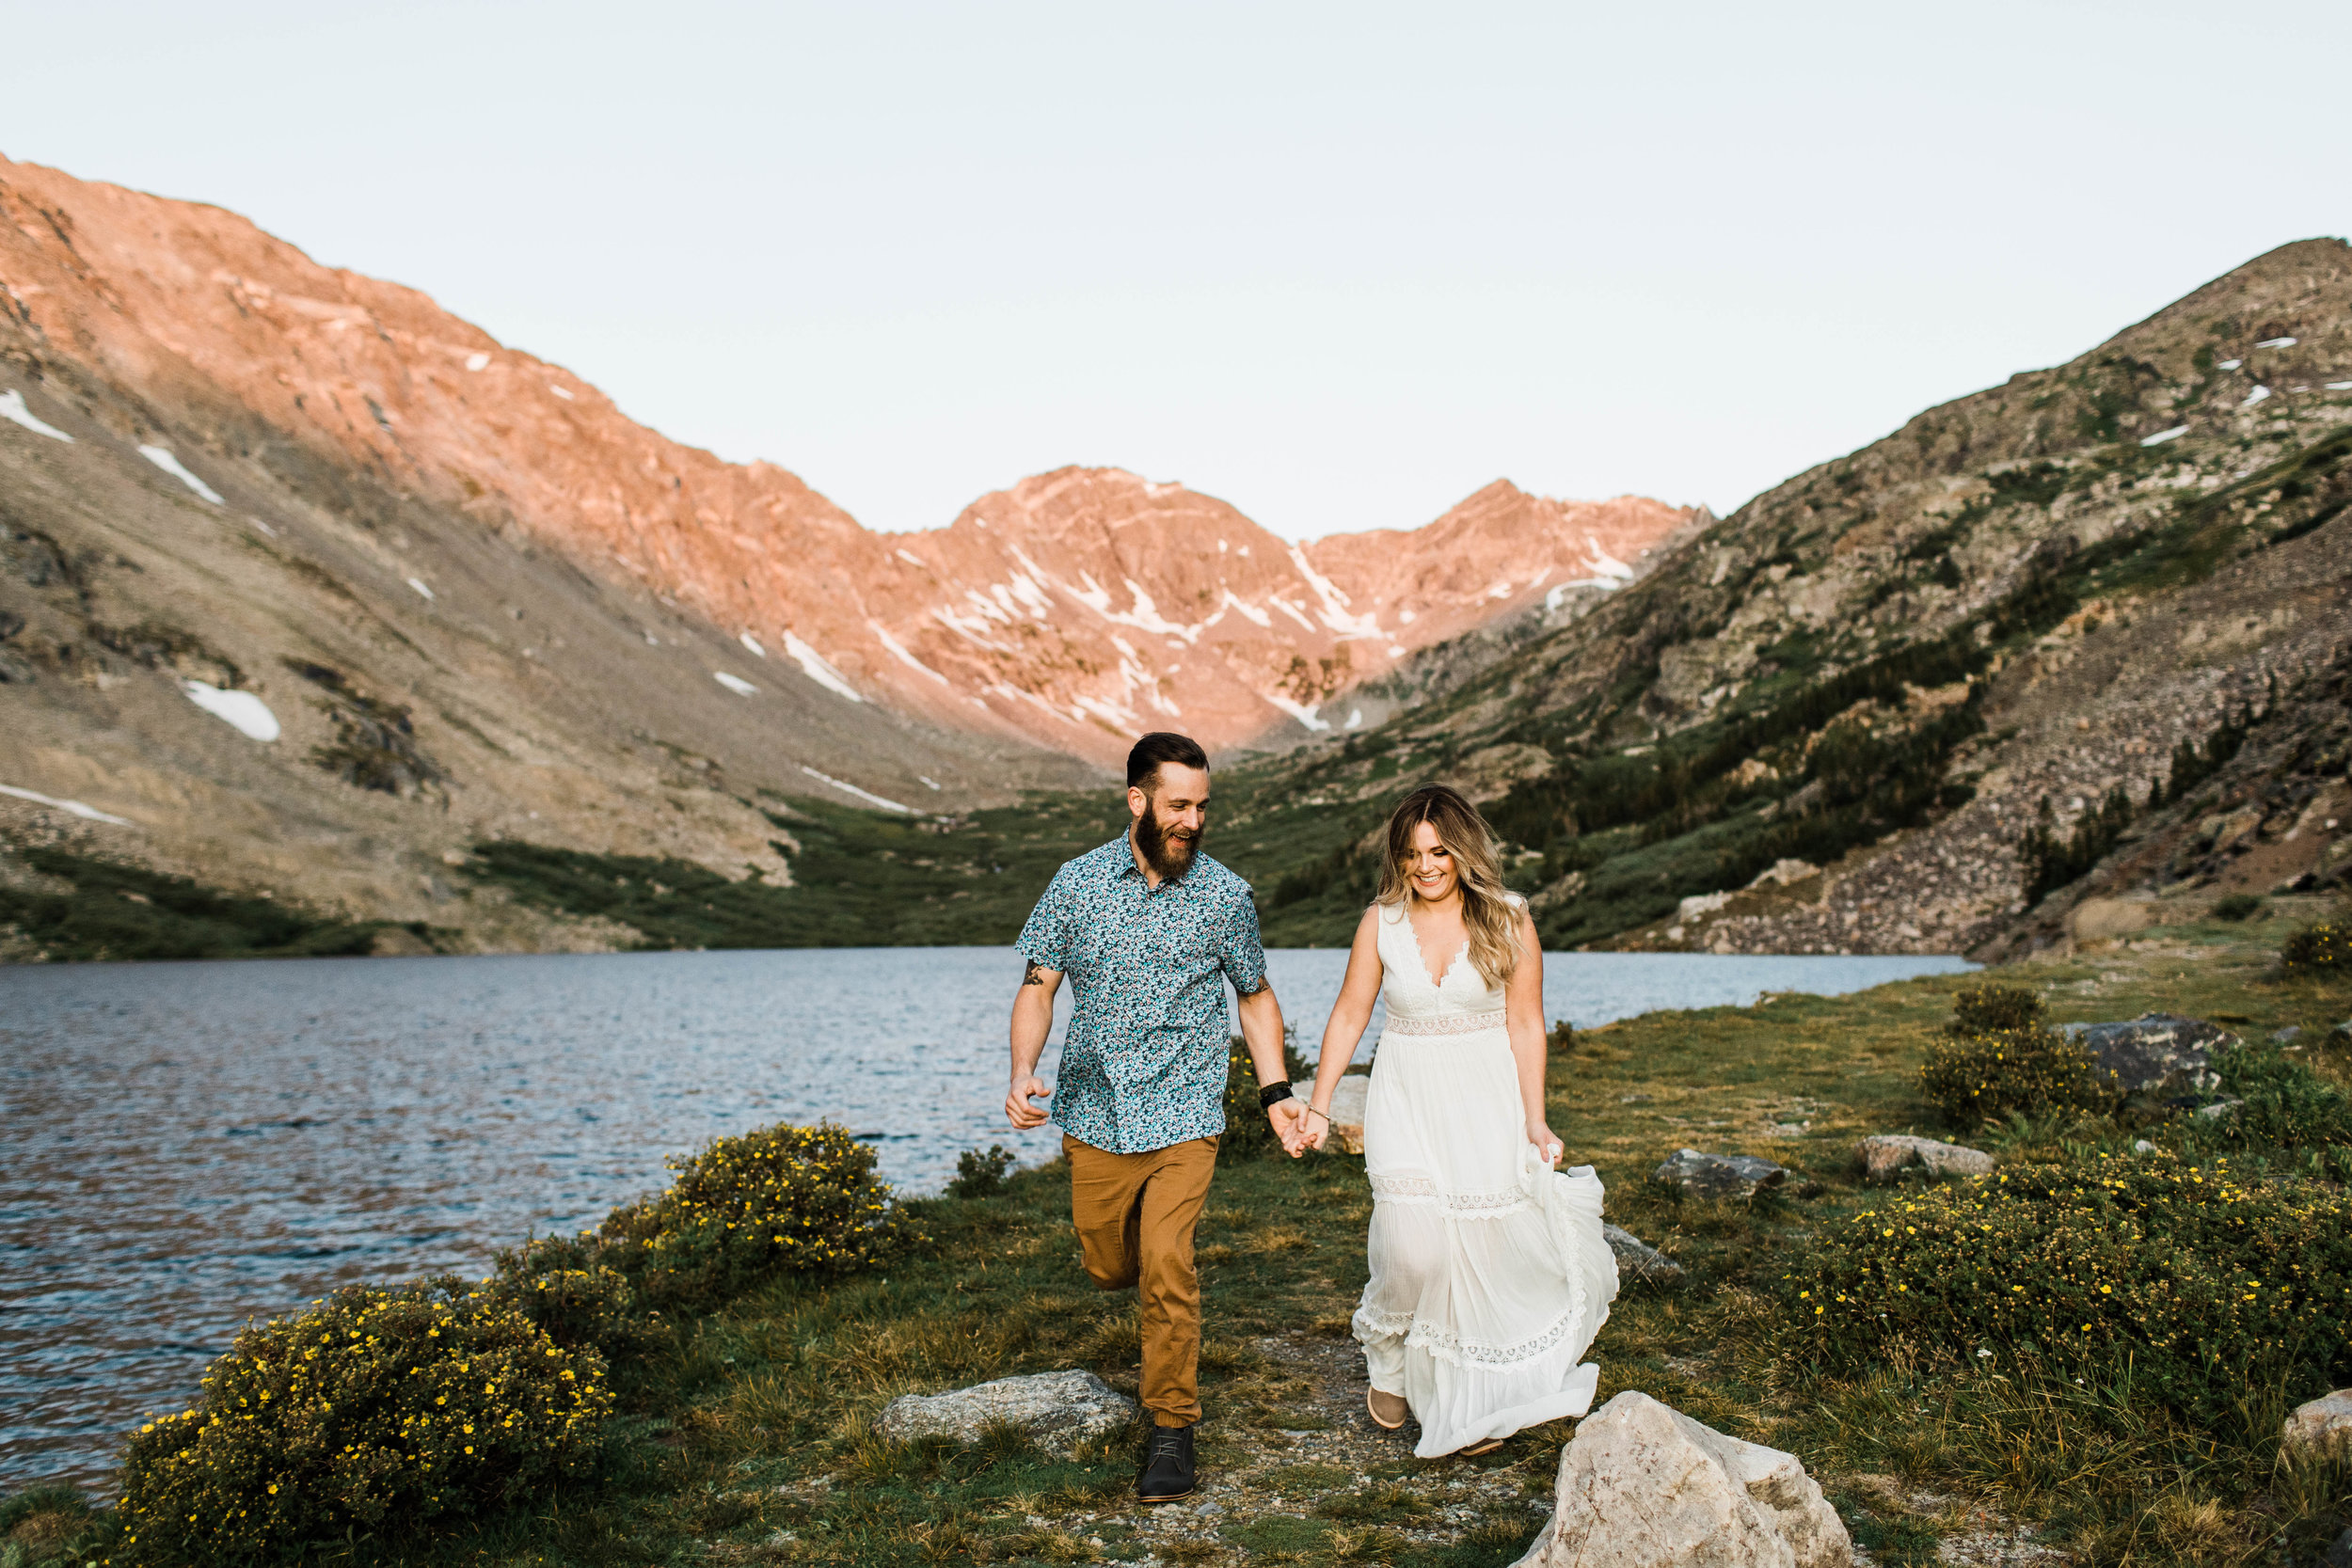 Engaged couple running together in the mountains during their Breckenridge adventure engagement photos at an alpine lake | Breckenridge elopement and adventure wedding photographers